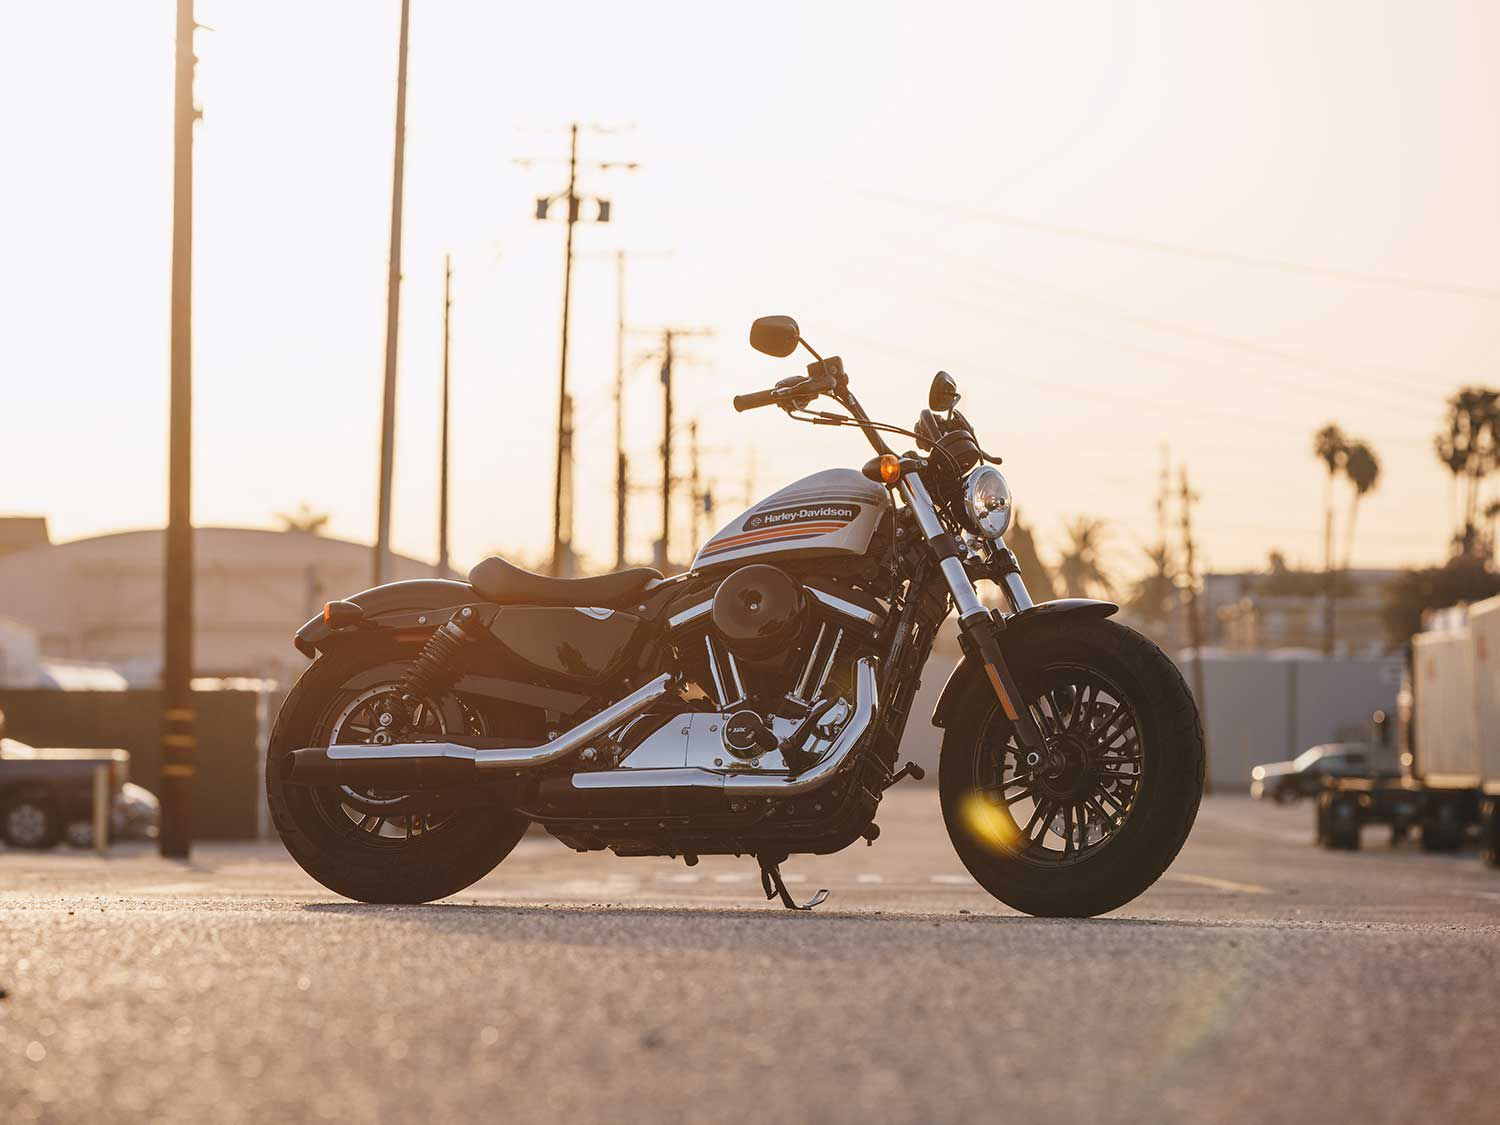 The Harley-Davidson Forty-Eight Special.